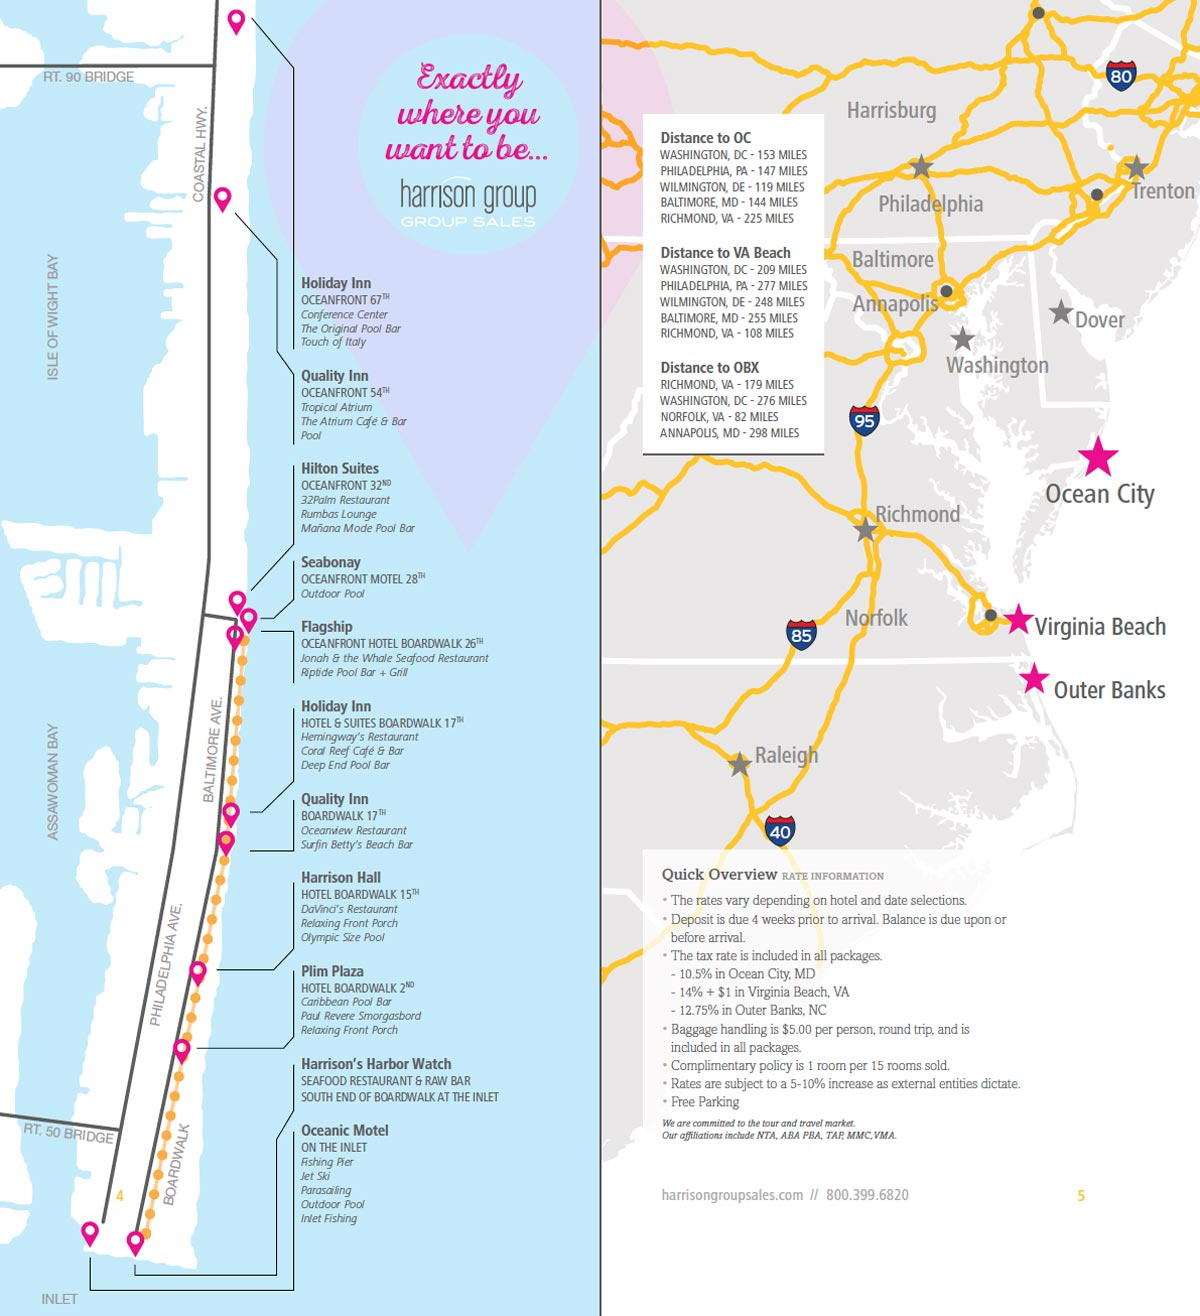 Maps to our Ocean City, Maryland locations as well as Virginia Beach and Outer Banks